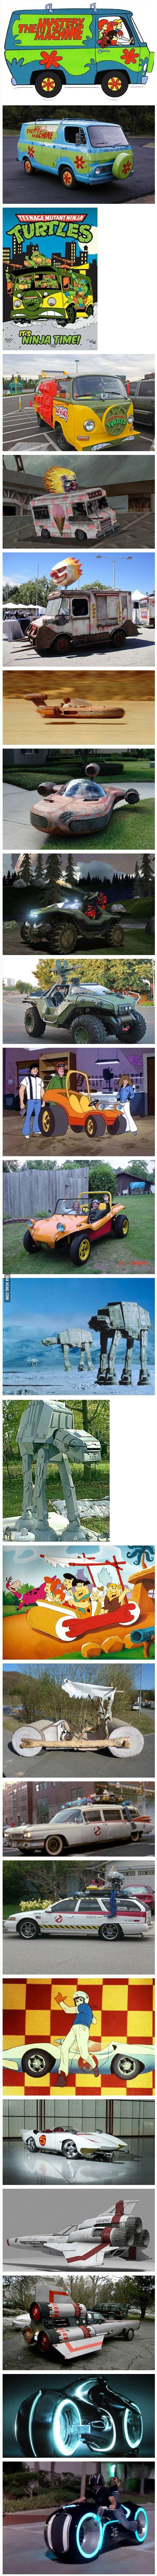 Awesome Fictional Vehicles in Real Life